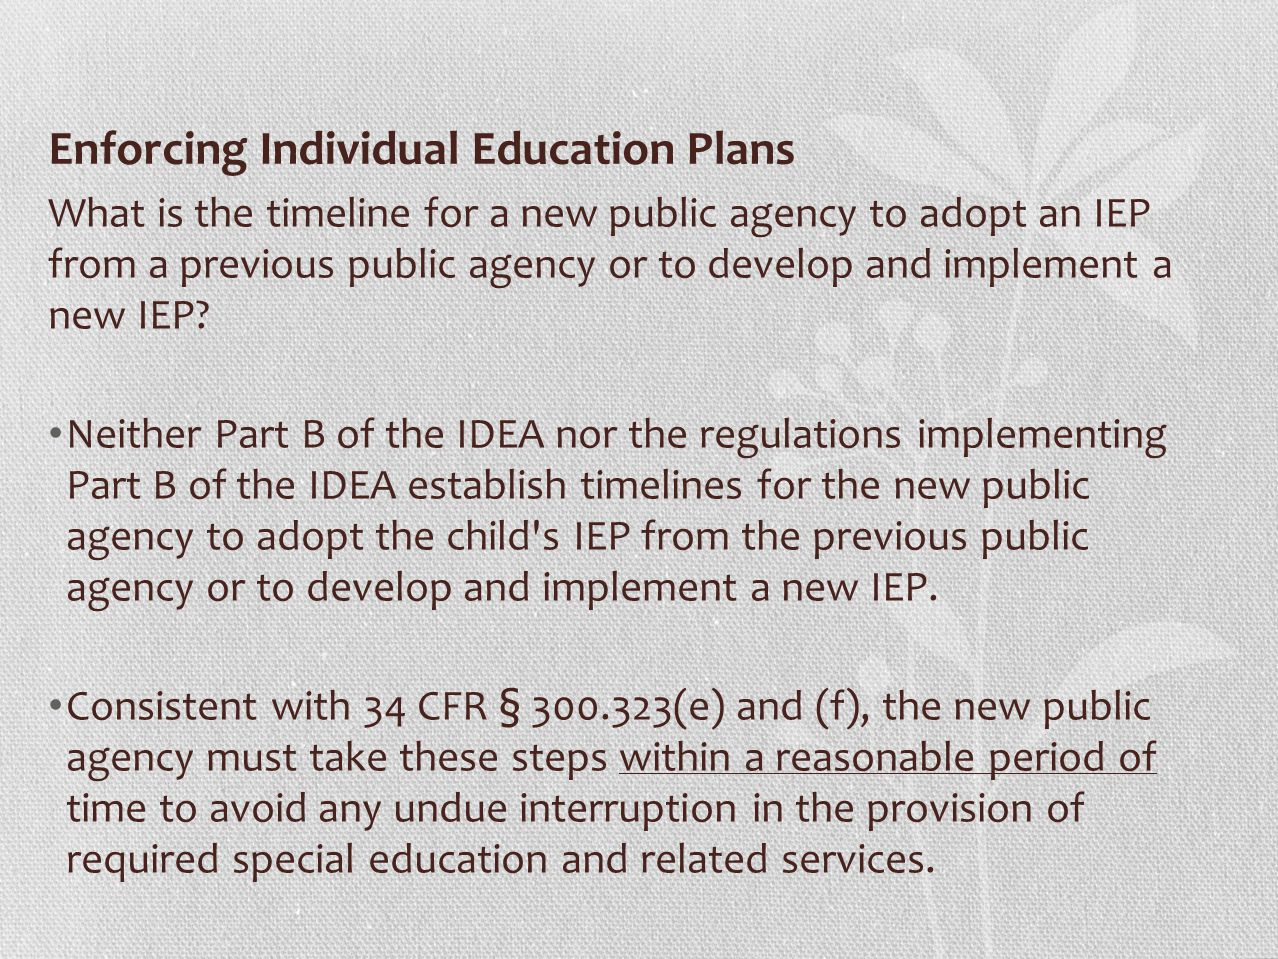 Enforcing Individual Education Plans What is the timeline for a new public agency to adopt an IEP from a previous public agency or to develop and implement a new IEP.